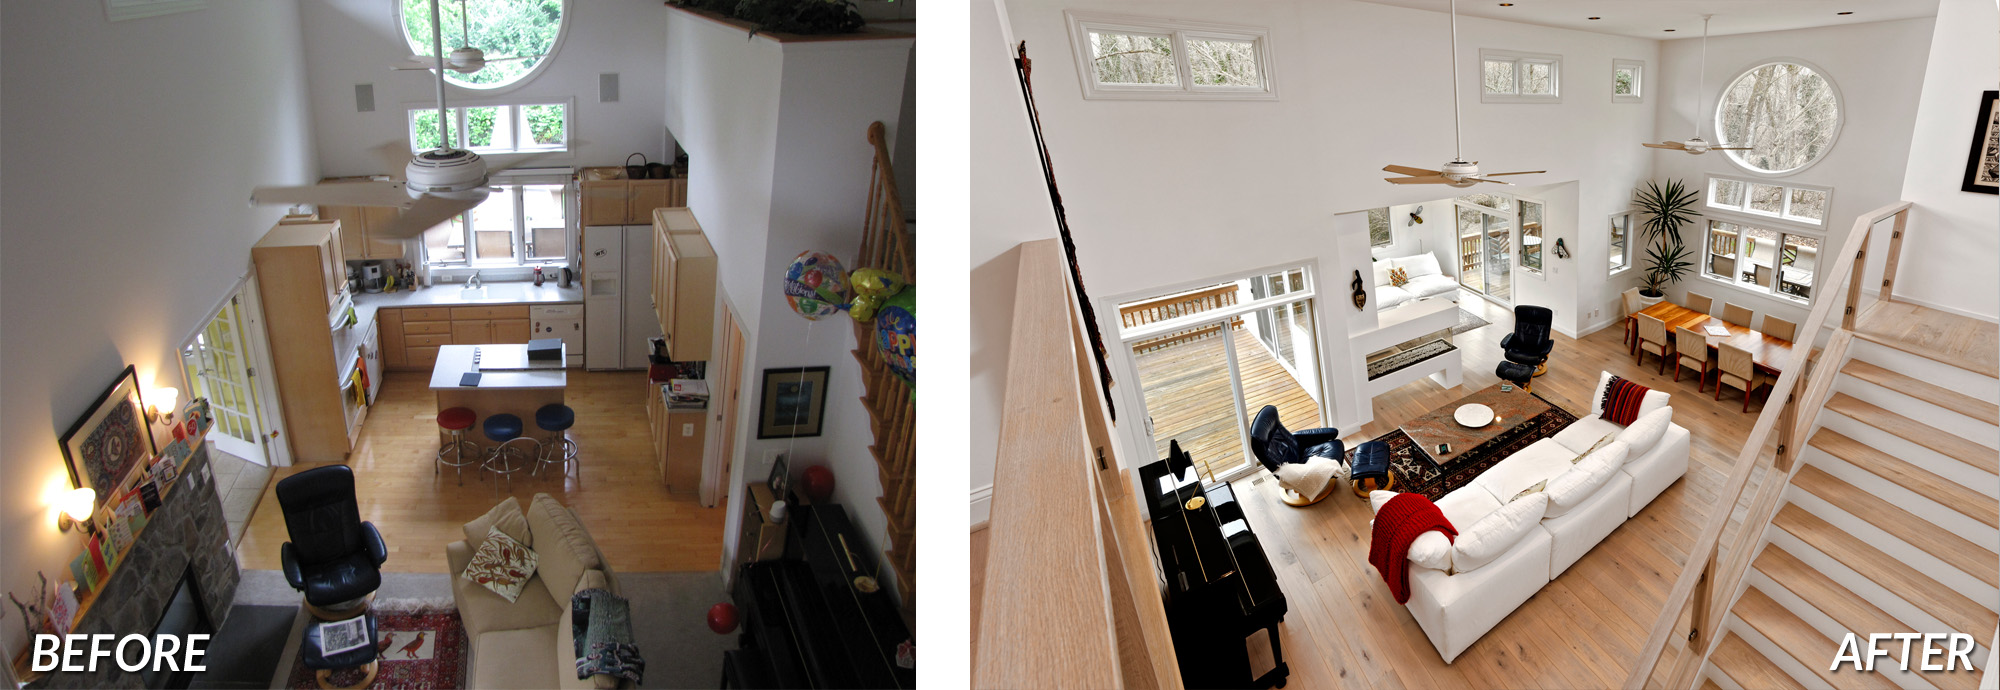 BOWA Design Design Build - McLean Contemporary Renovation Before & After